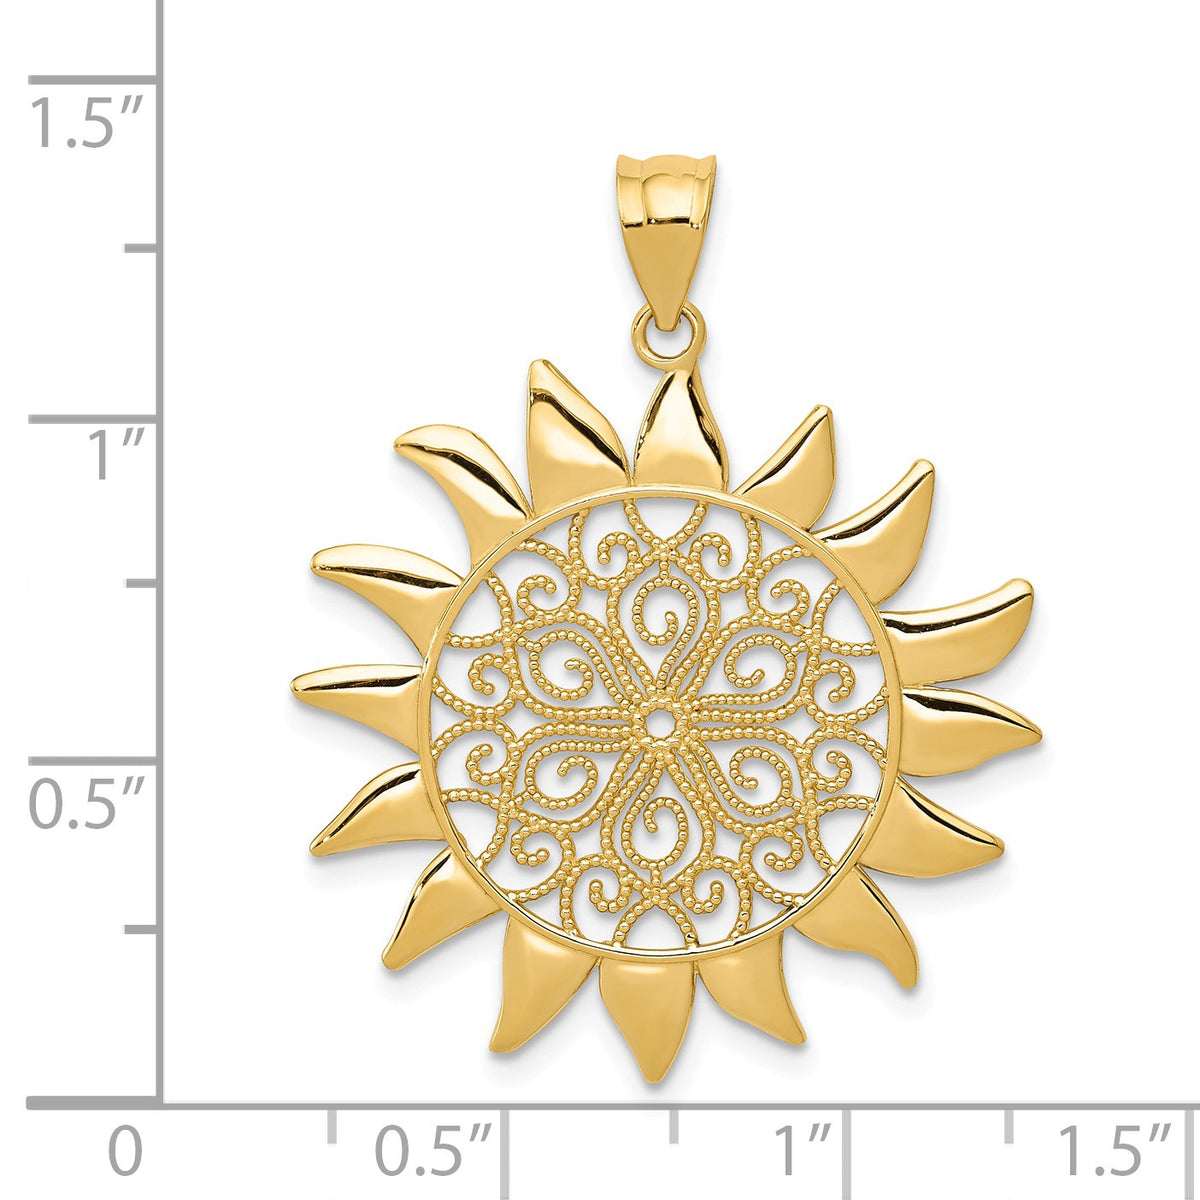 Alternate view of the 14k Yellow Gold 27mm Filigree Sun Pendant by The Black Bow Jewelry Co.